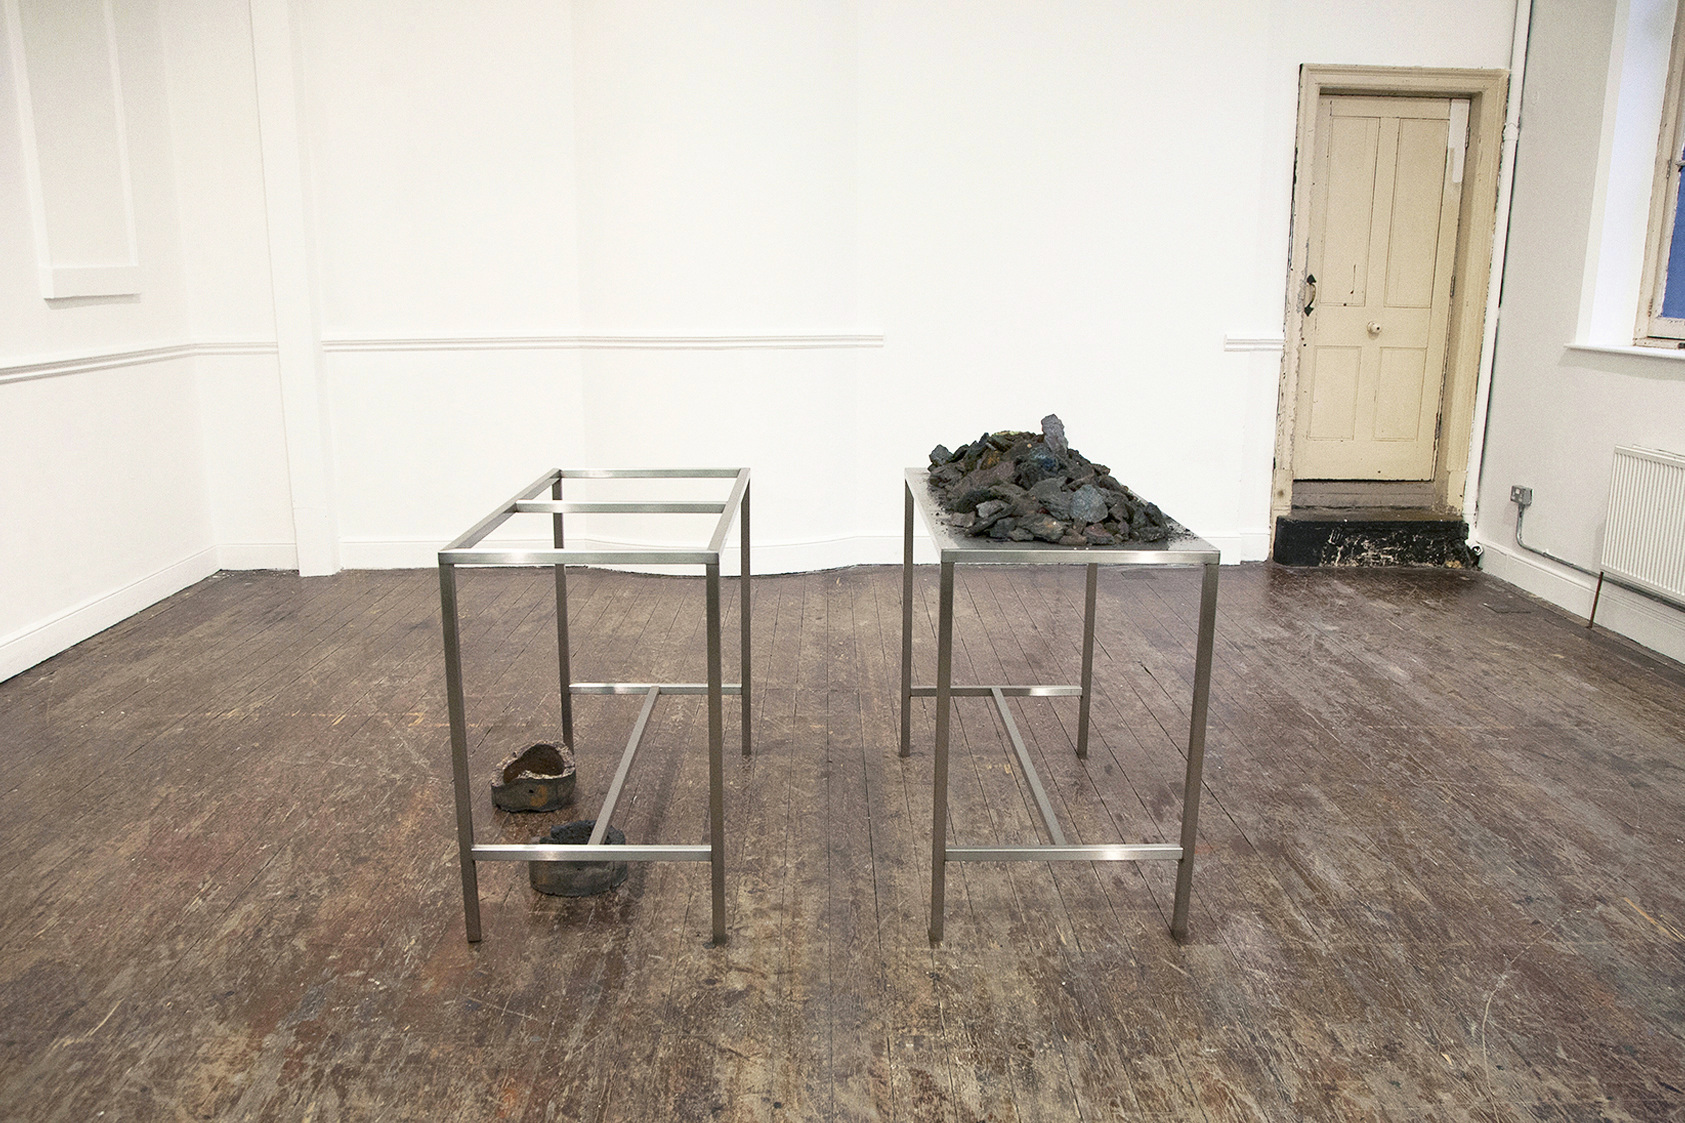 Andrea Zucchini, As Above So Below, 2014 at Zabludowicz Collection, London. Iron sulphide, stainless steel.